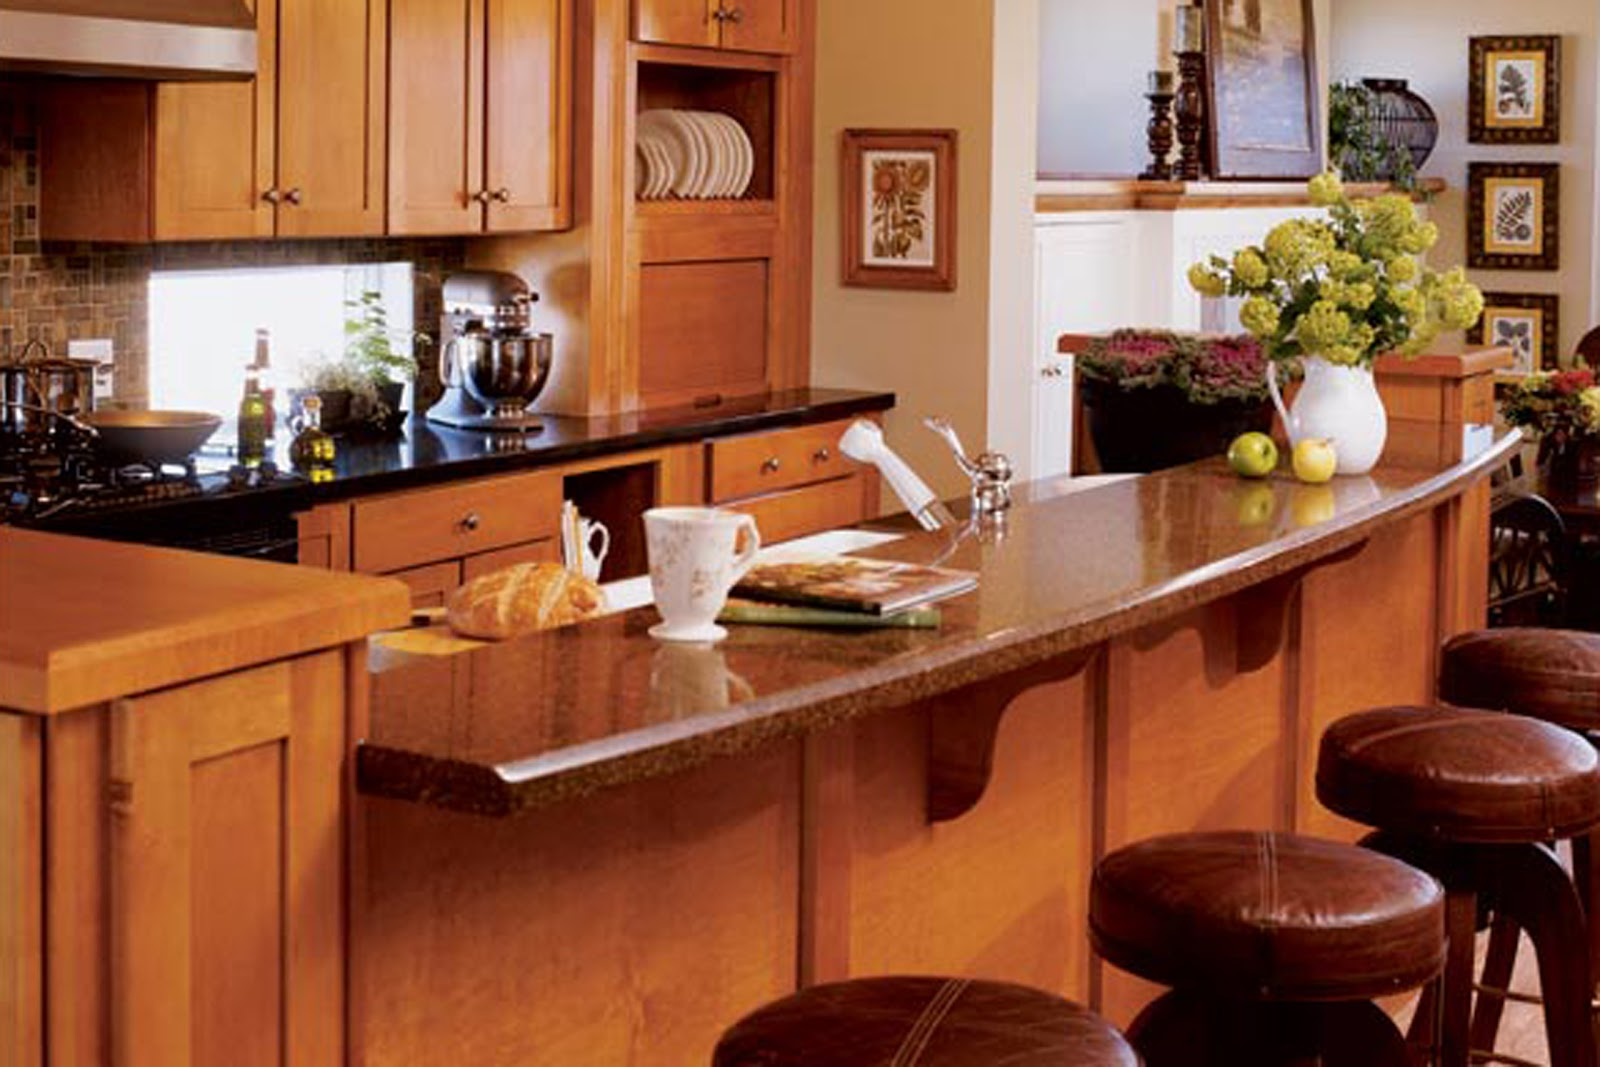 Simply elegant home designs blog february 2011 - Ideas for kitchen islands ...